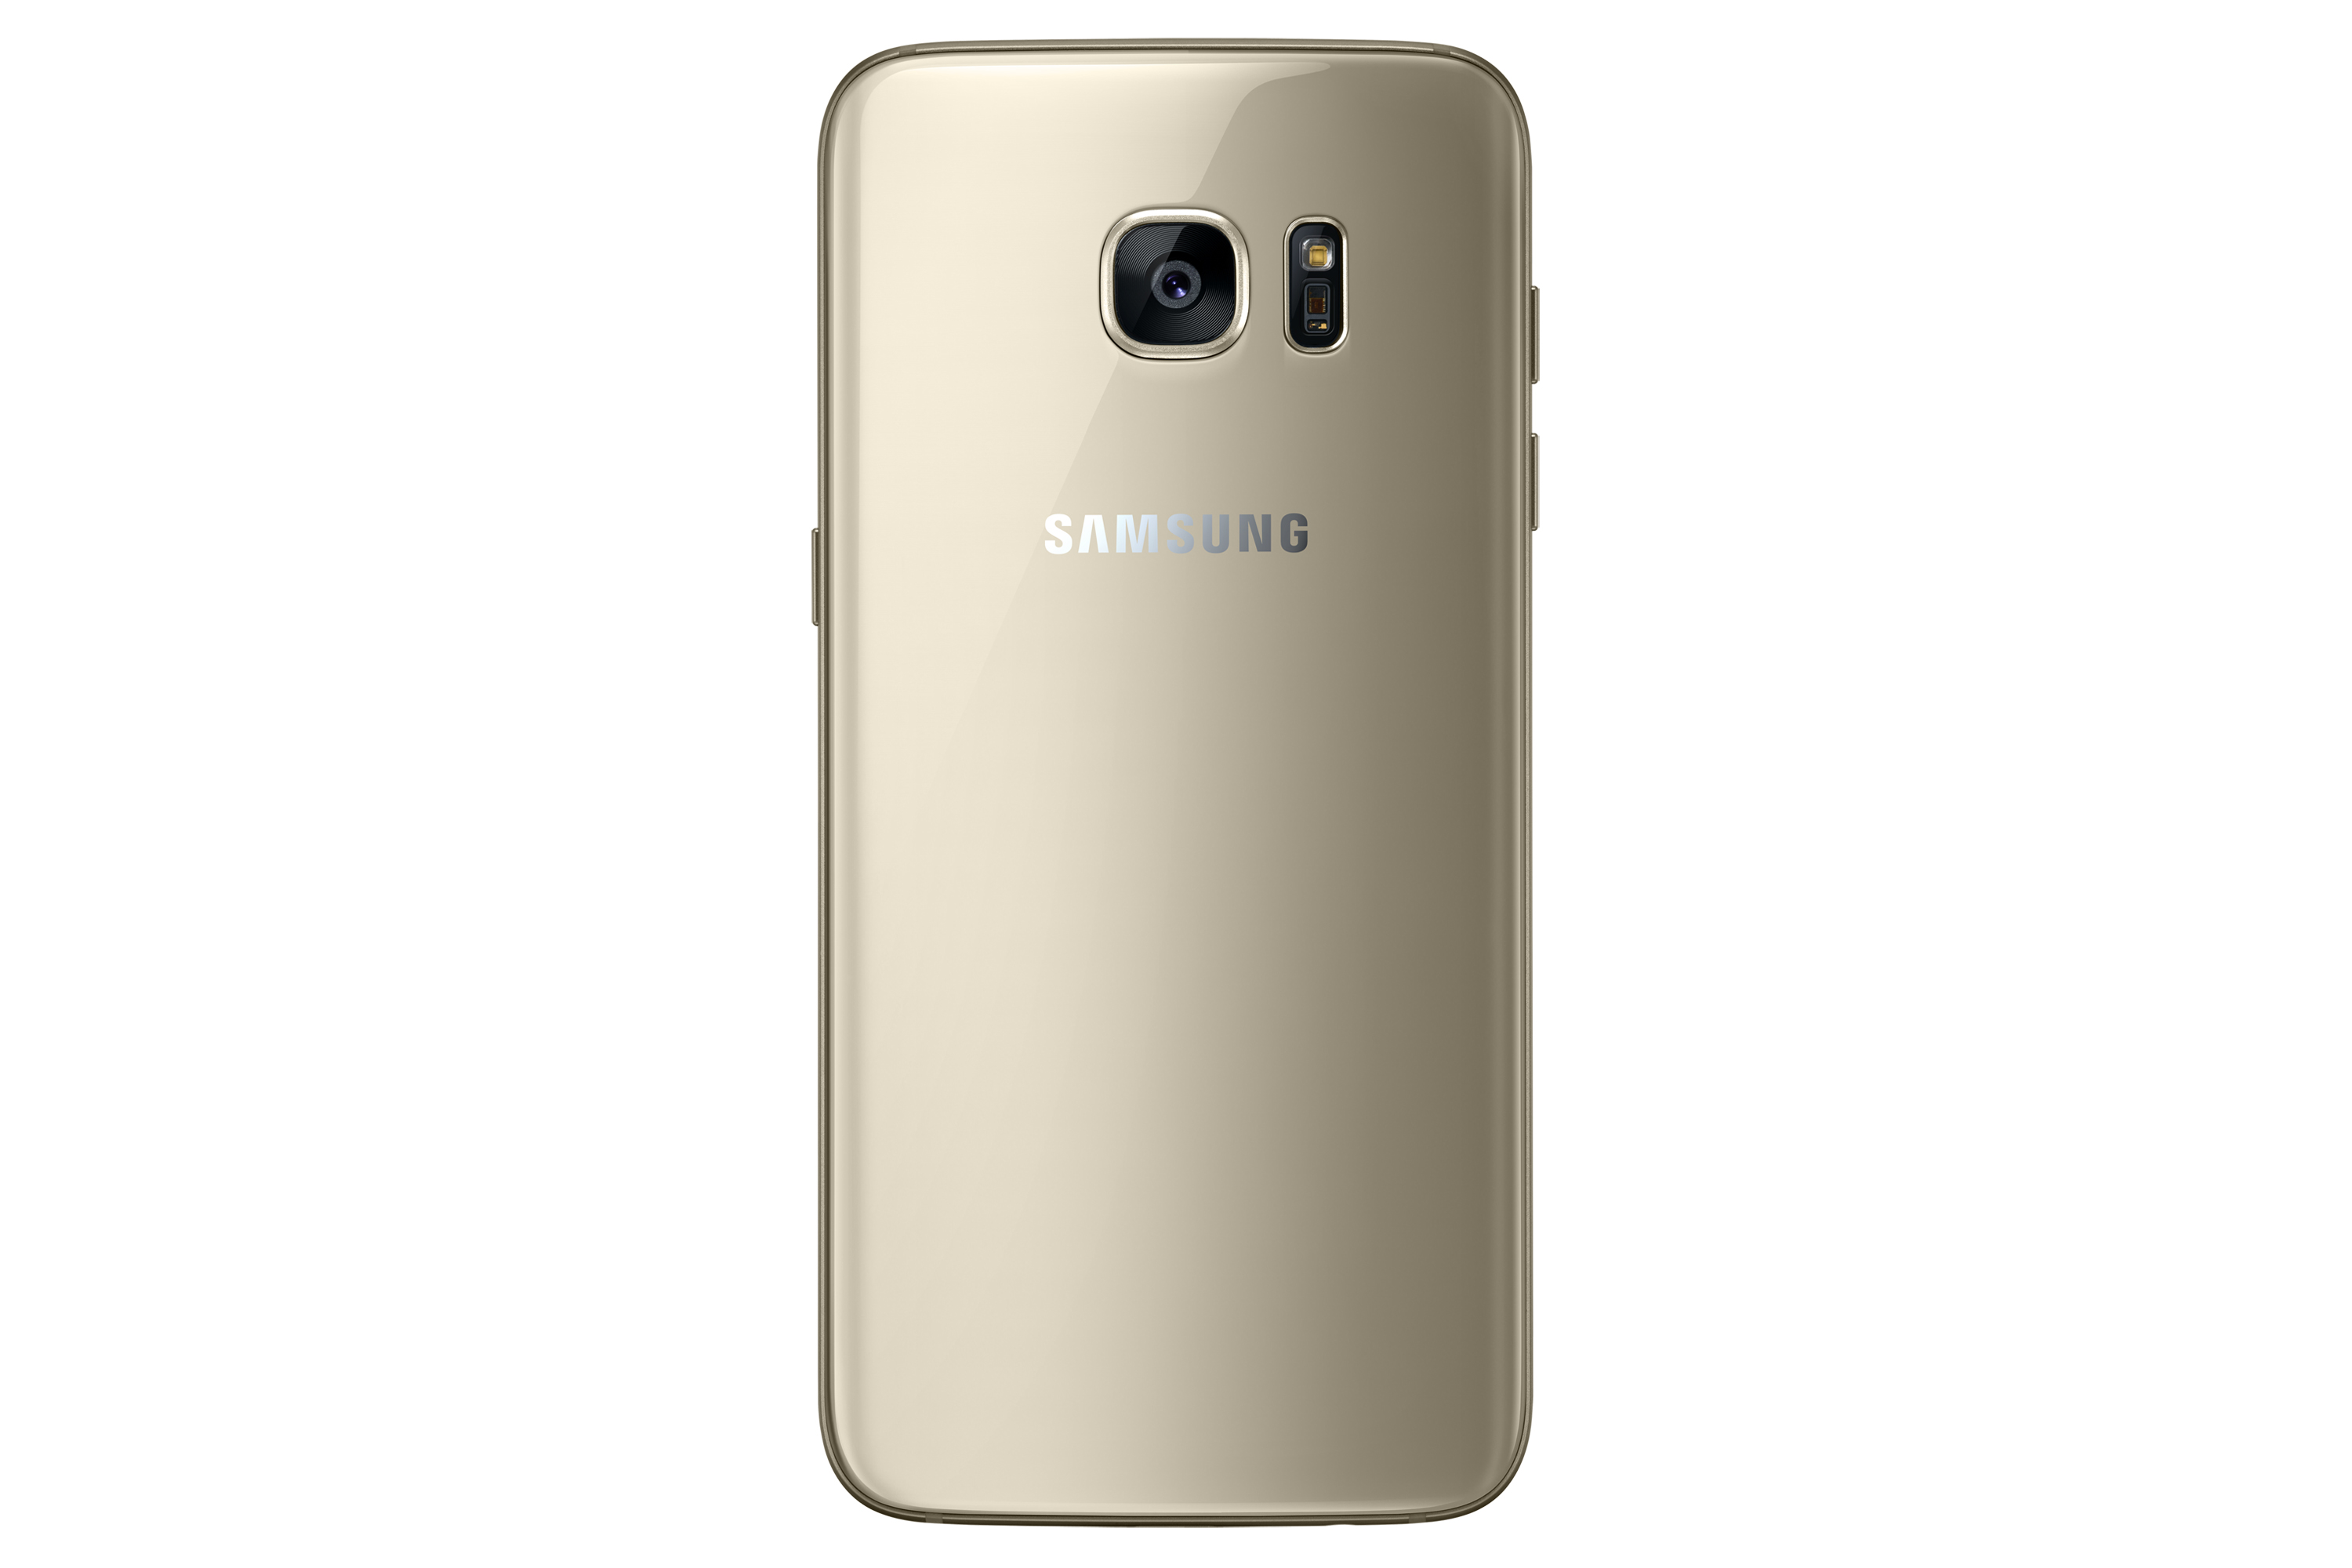 Galaxy-S7-edge-official-press-shots (5)